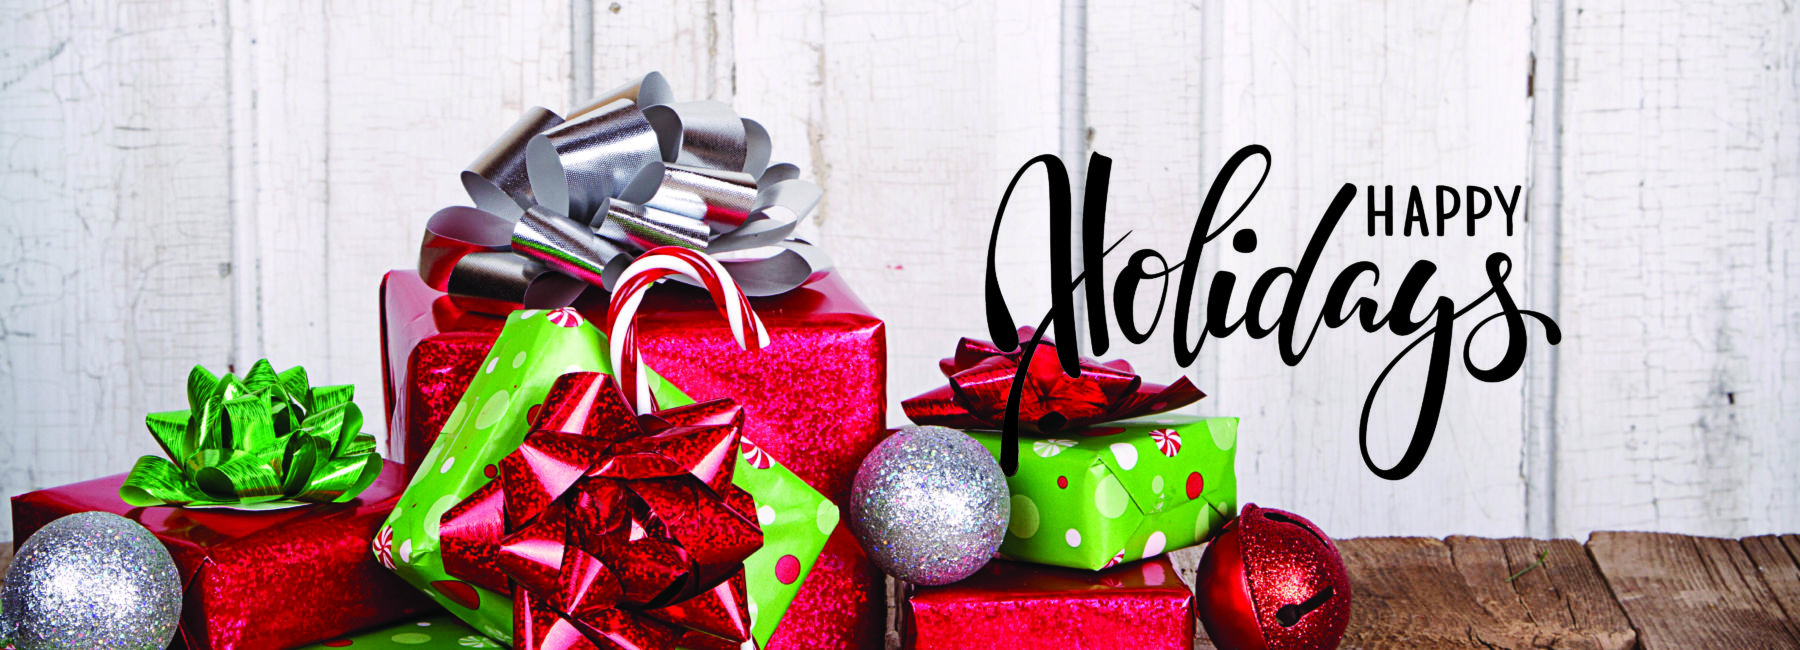 wrapped gifts with Happy Holidays text